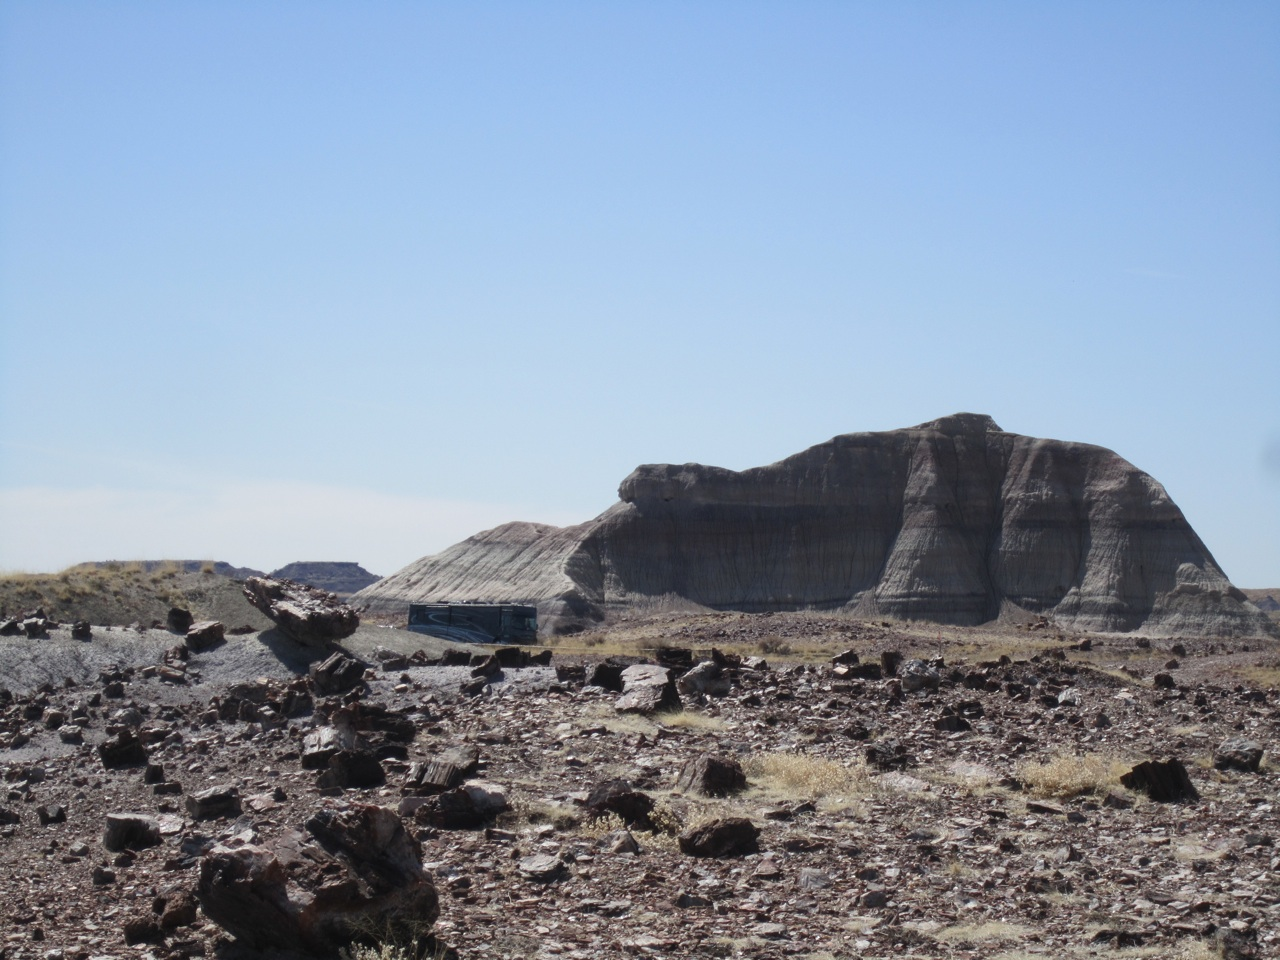 Our Motorhome In The Background Of All Scattered About Petrified Wood